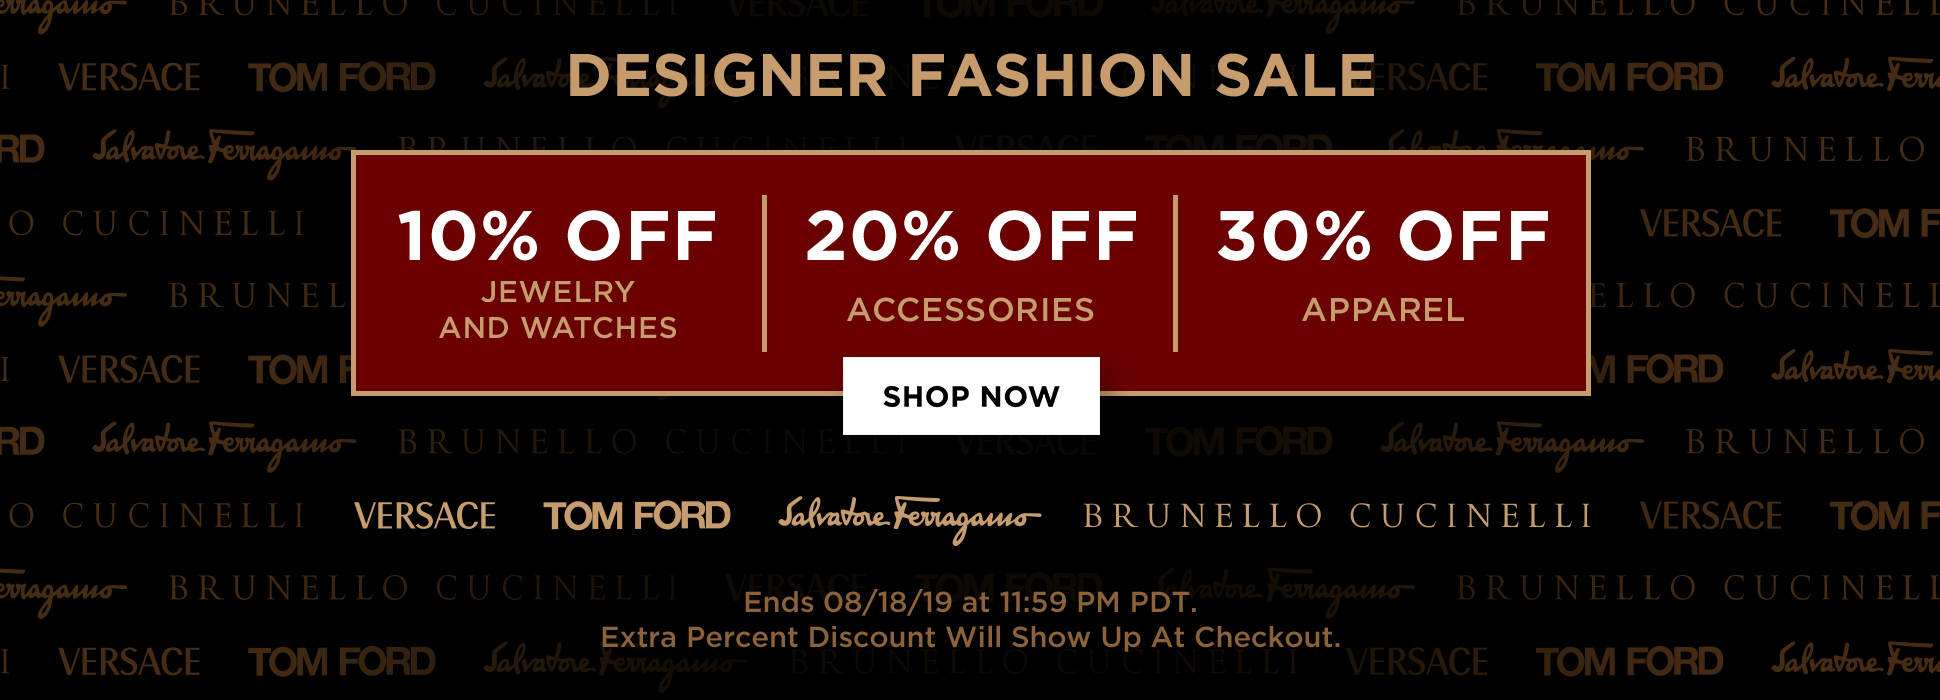 Fashion Promo (Web Banner)